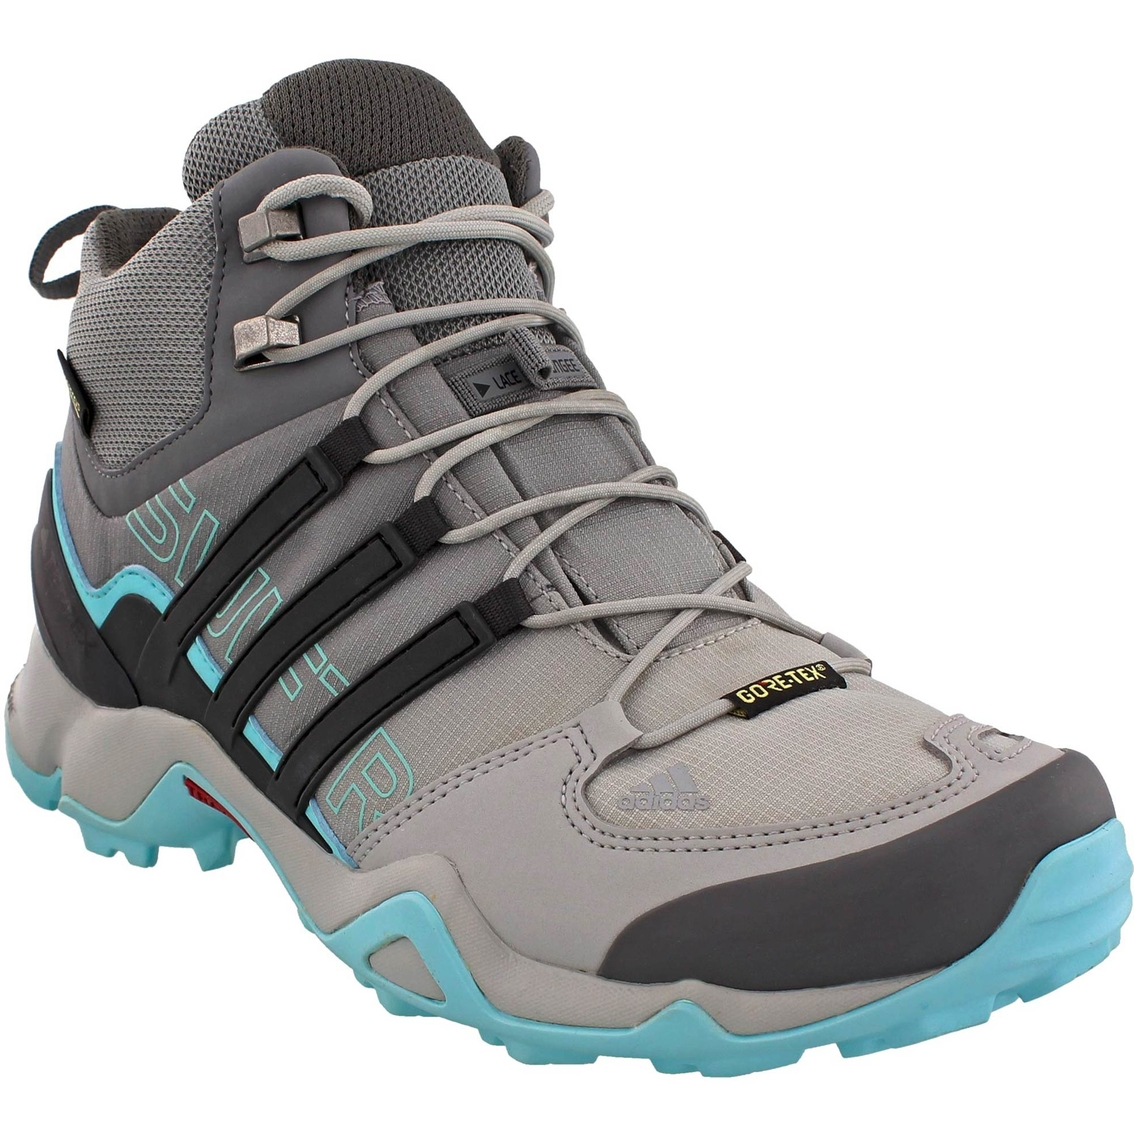 the best attitude fa9c4 33253 adidas Outdoor Women s Terrex Swift R Mid GTX Hiking Shoes